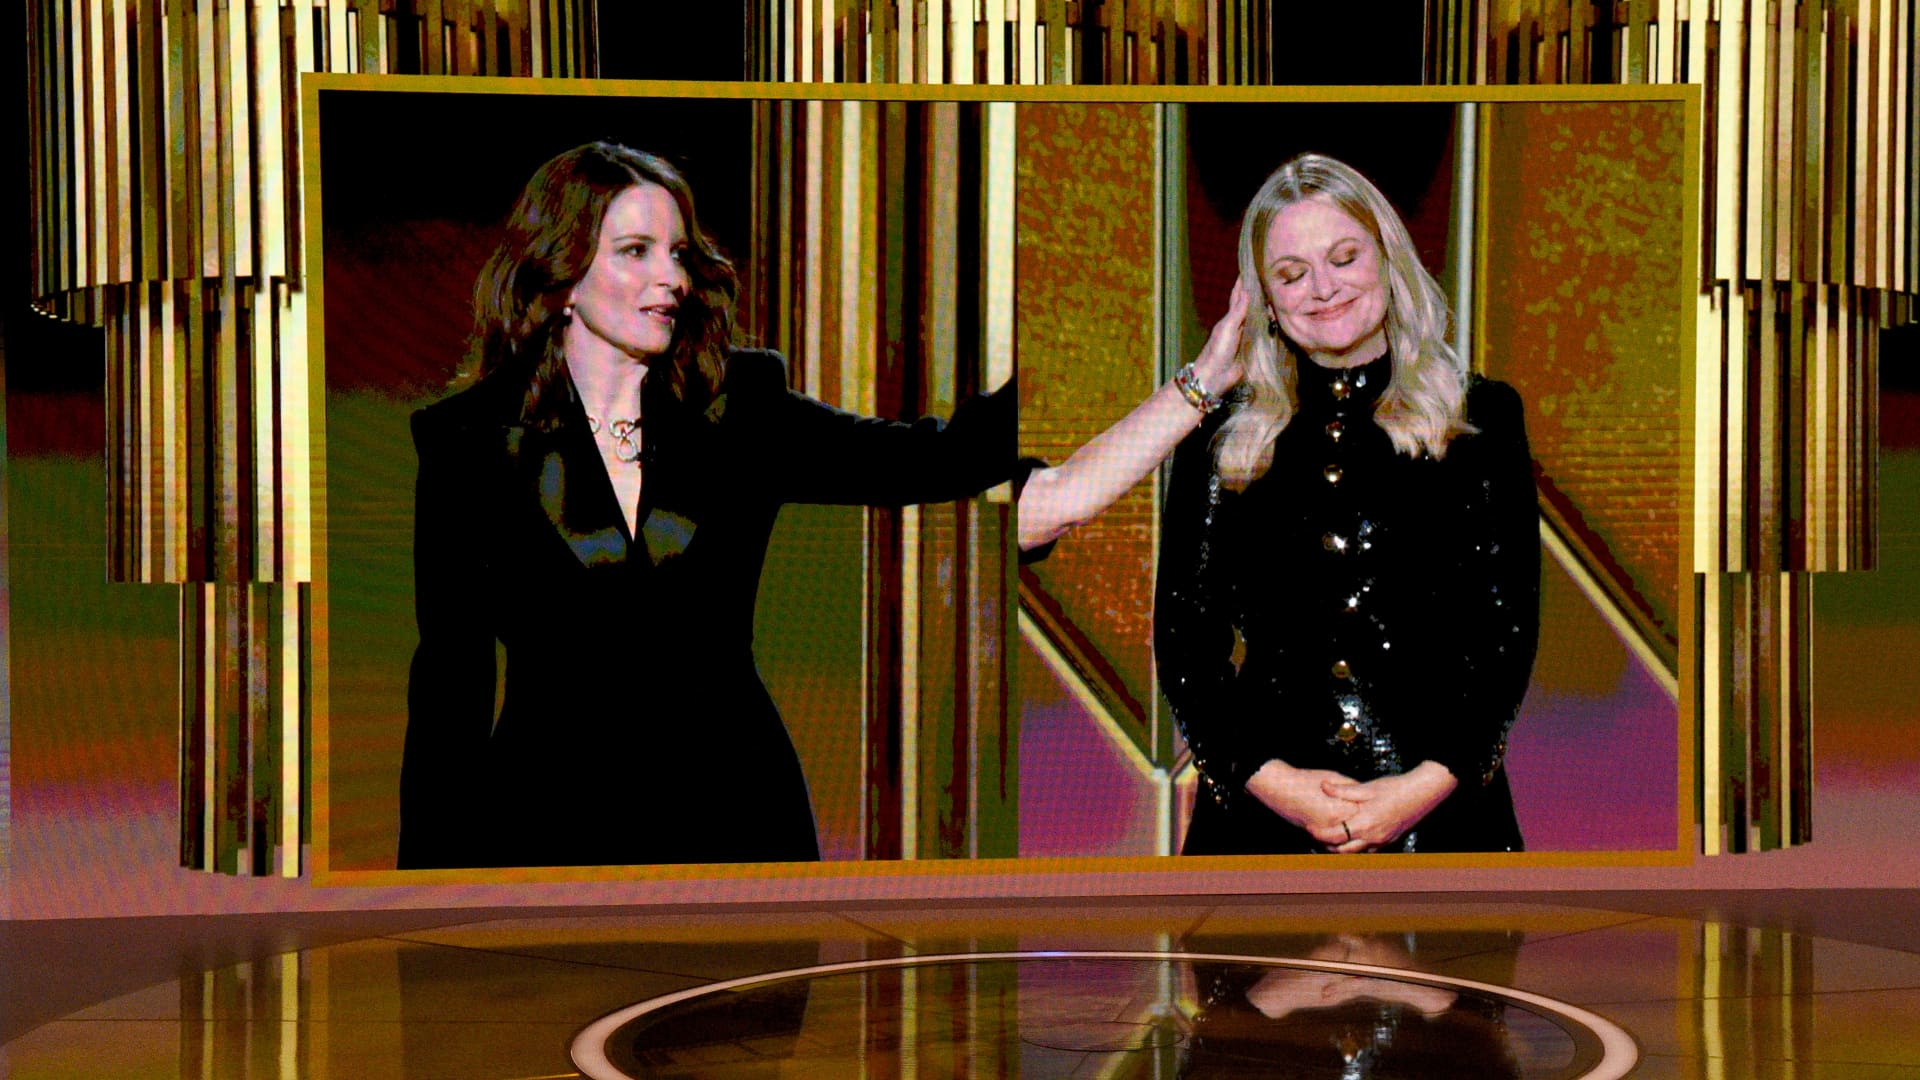 Tina Fey and Amy Poehler speak via livestream during the 78th Annual Golden Globe® Awards at The Rainbow Room on February 28, 2021 in New York City.